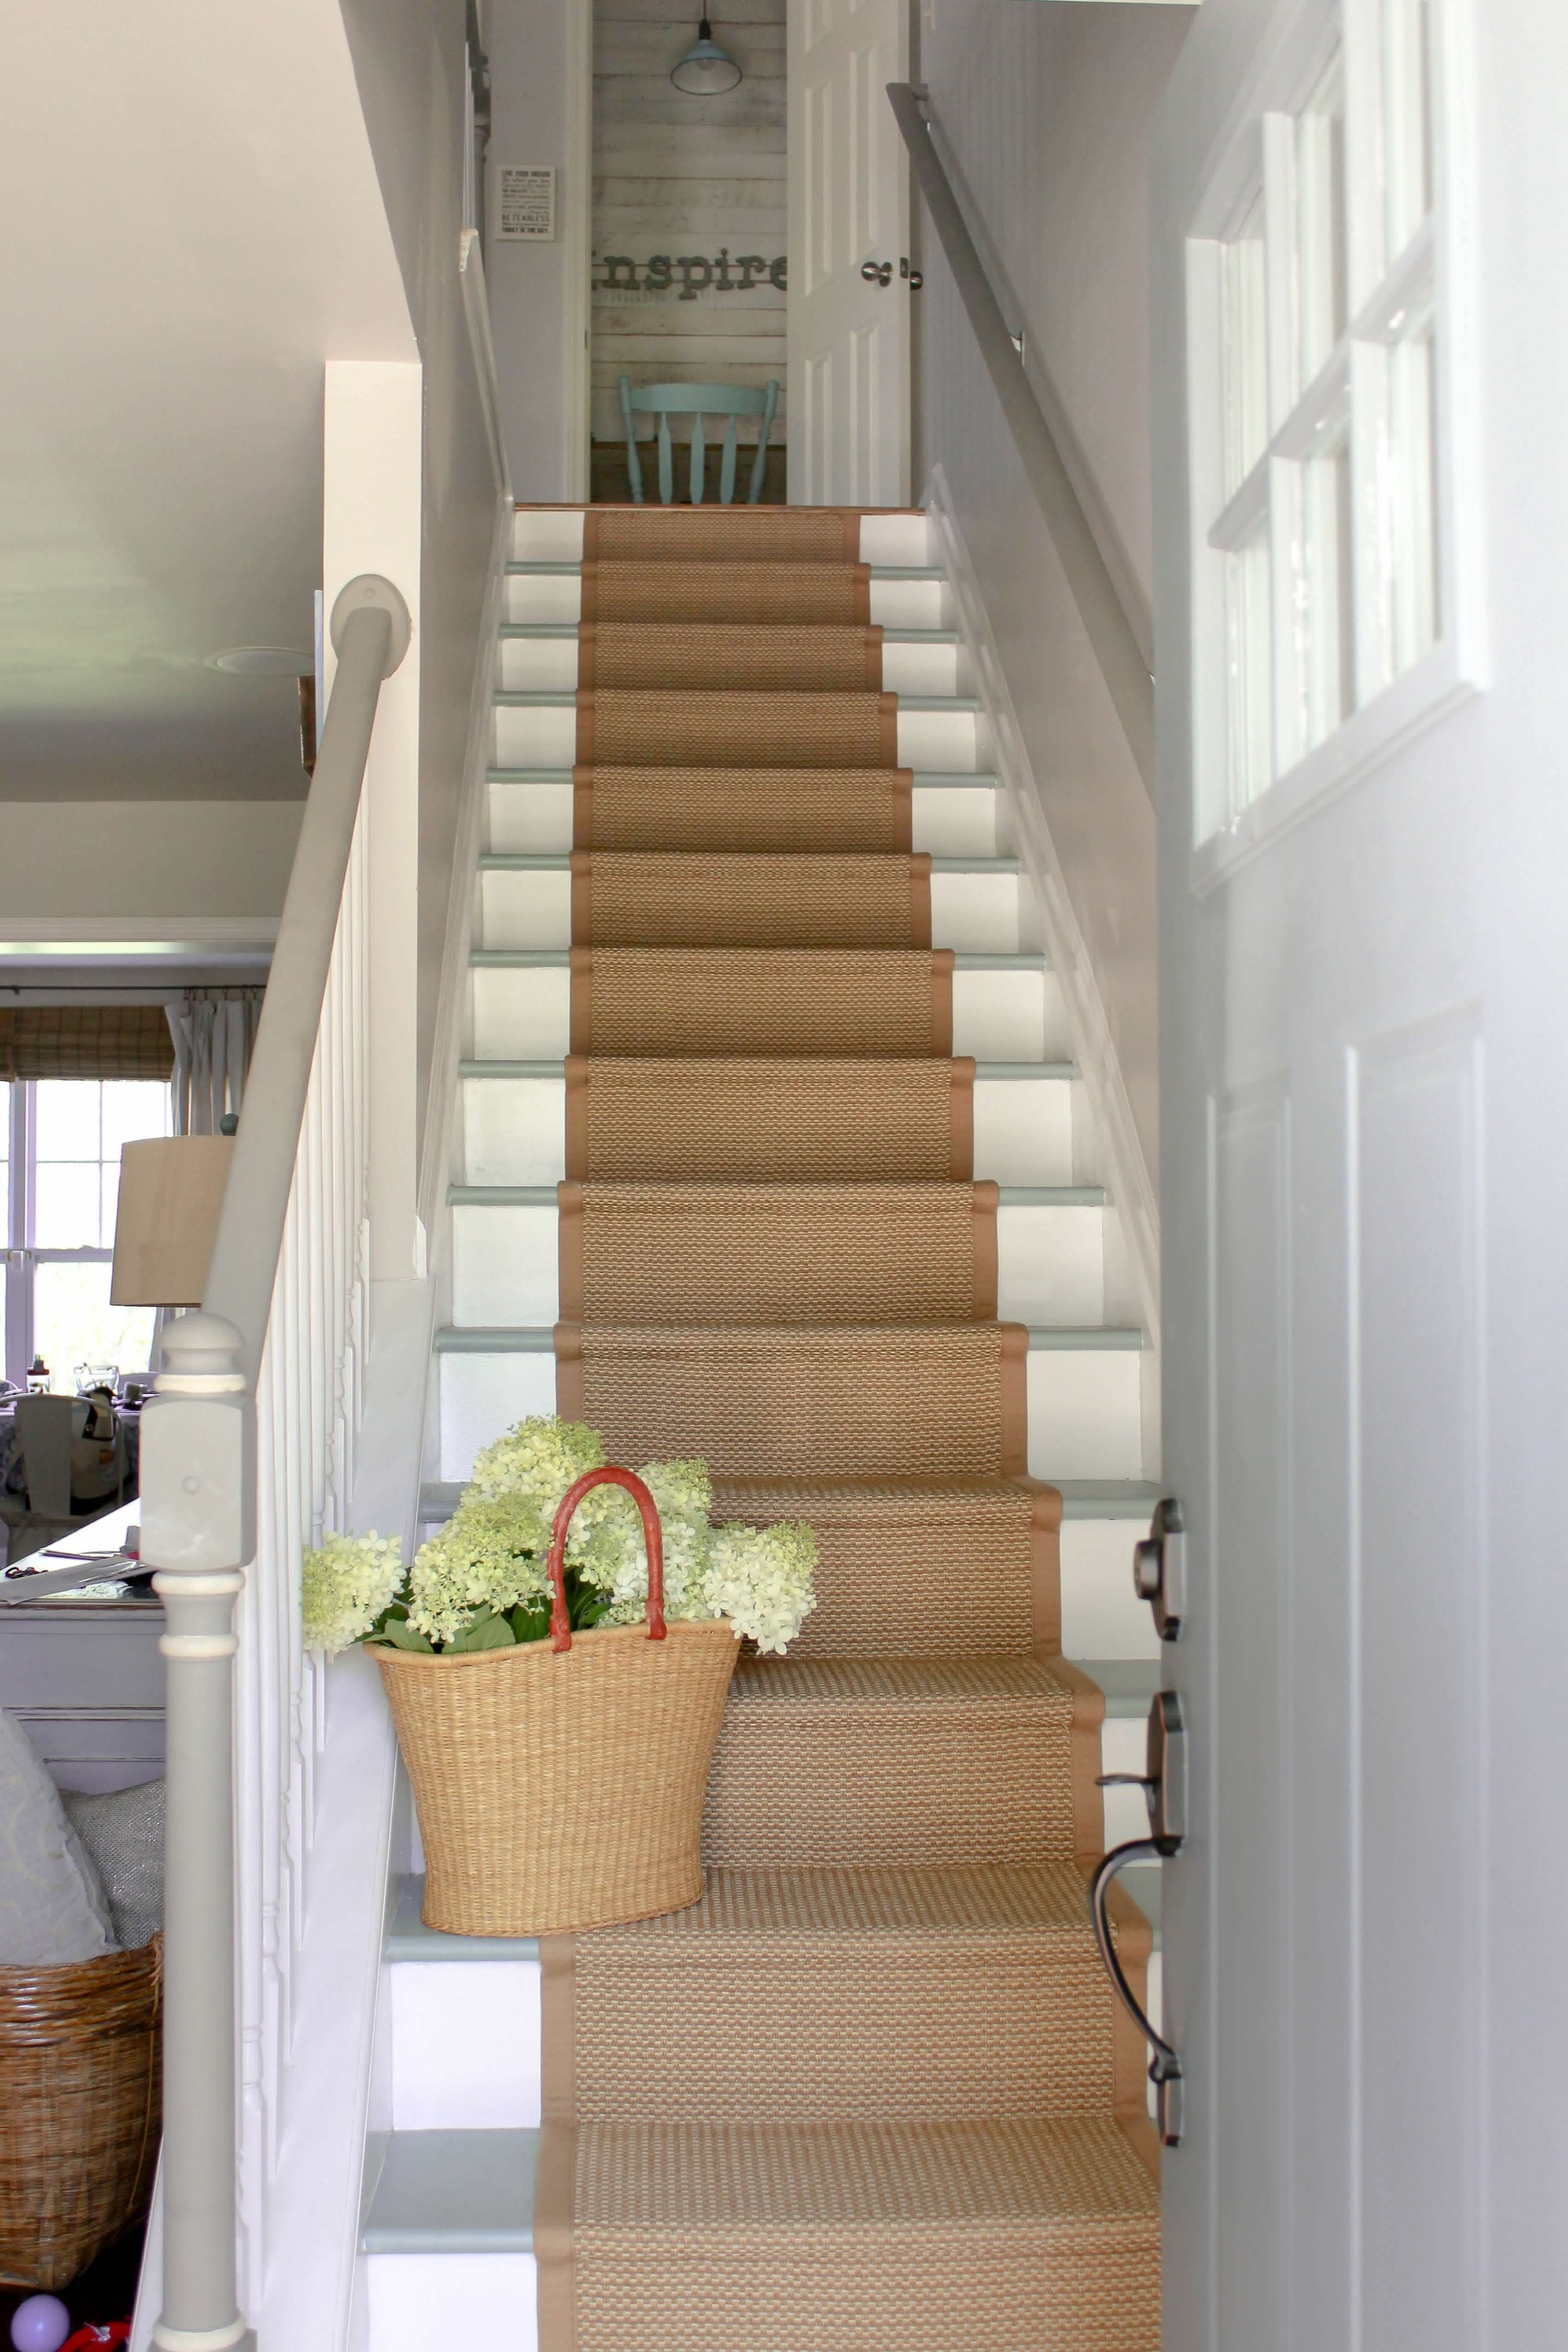 A Stair Runner Make To Look Like Sisal Or Natural